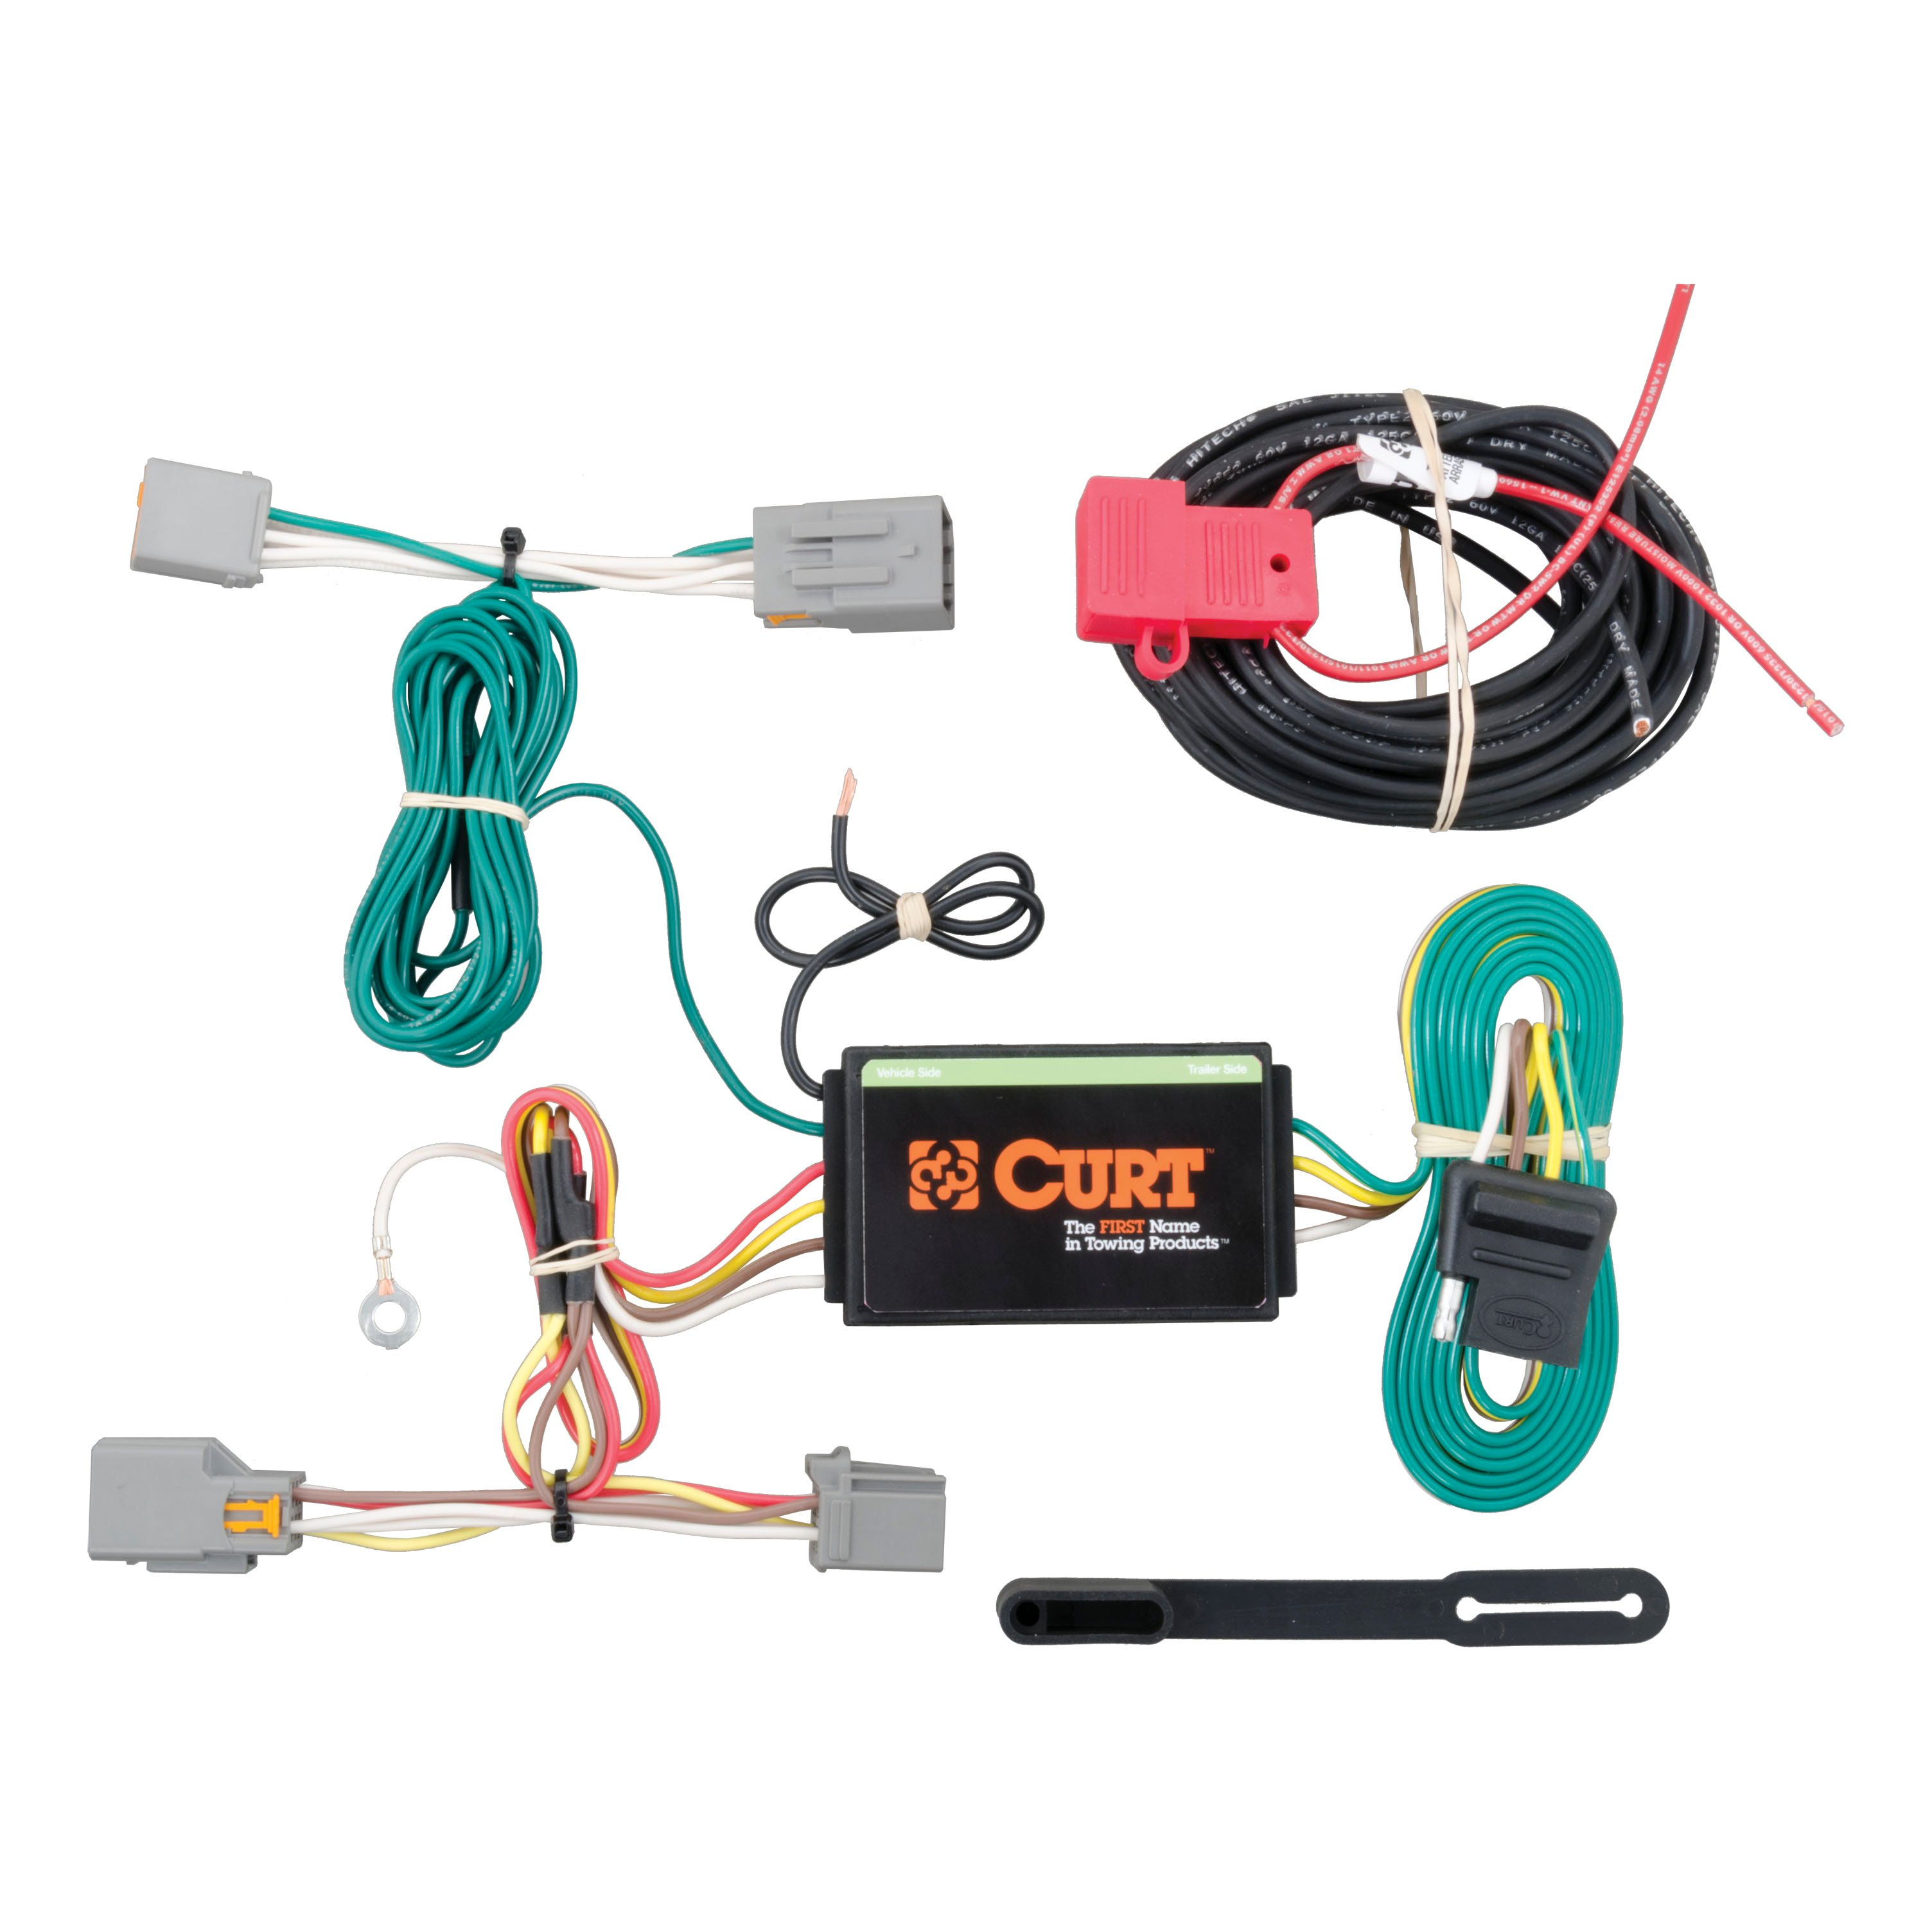 CURT Vehicle-to-Trailer Wiring Harness 56218 for 14-16 Ford Transit ...